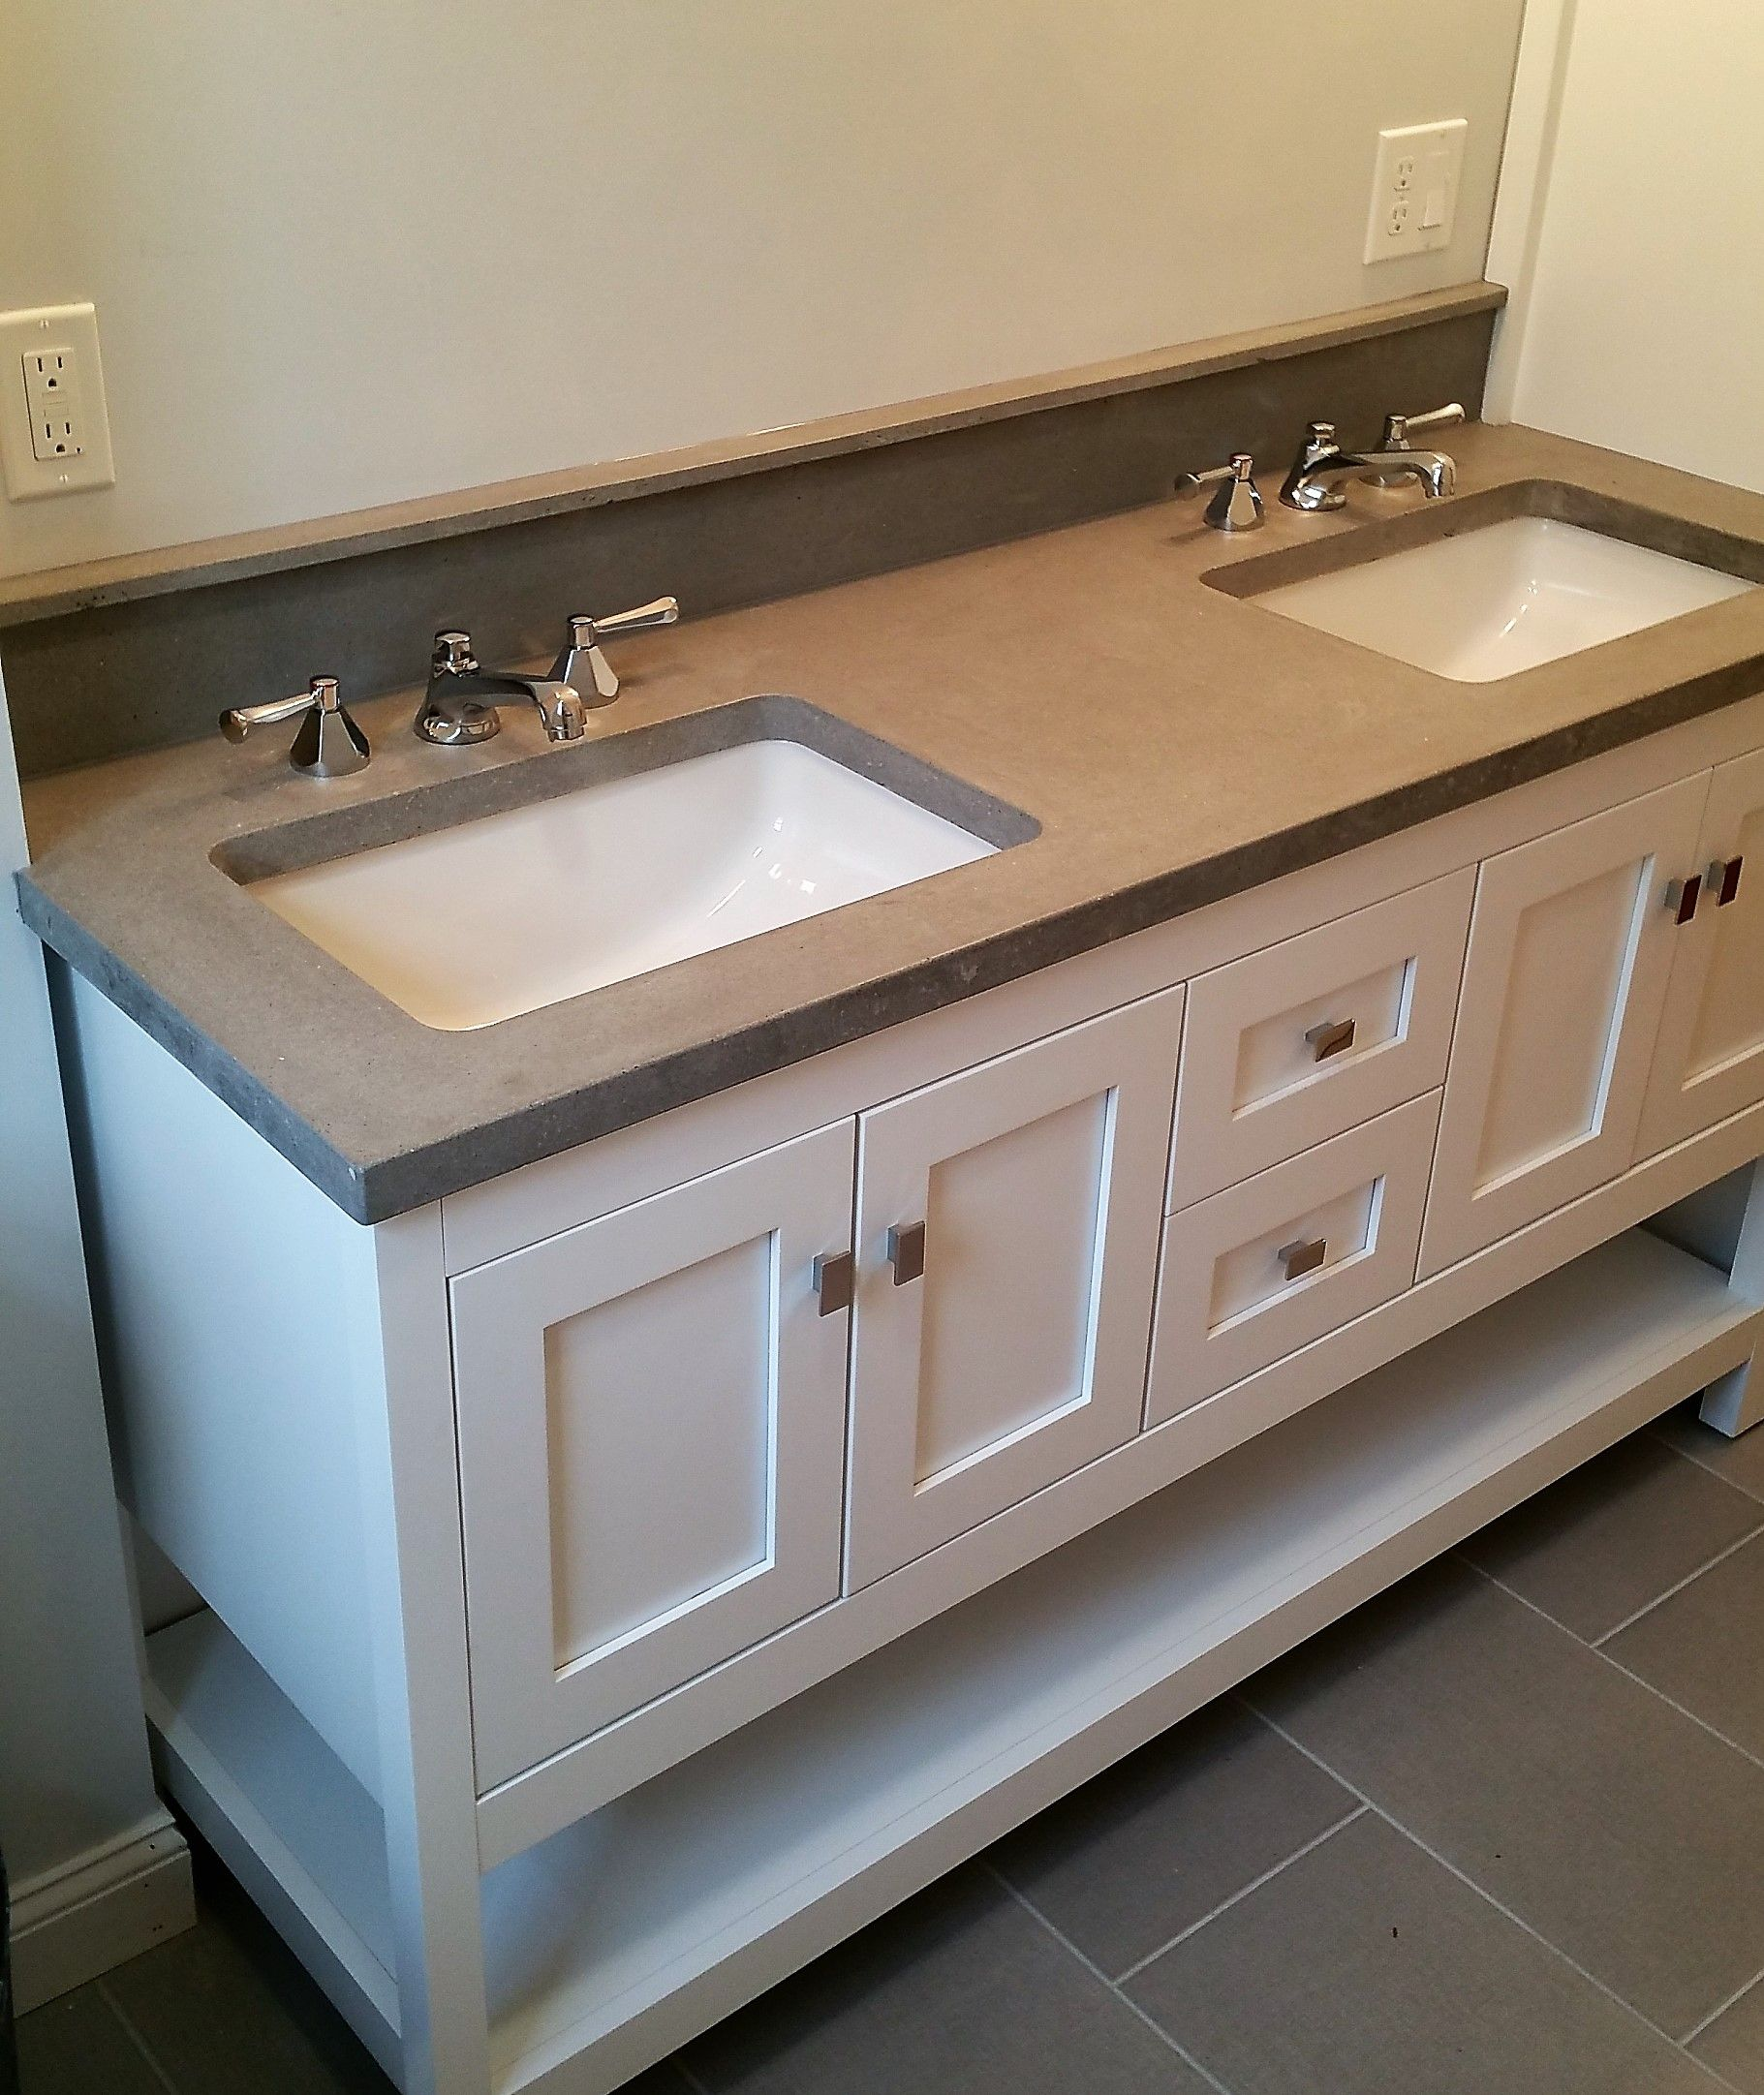 vanity luxurious charming vanities bathroom in marvelous design from countertops sinks concrete on